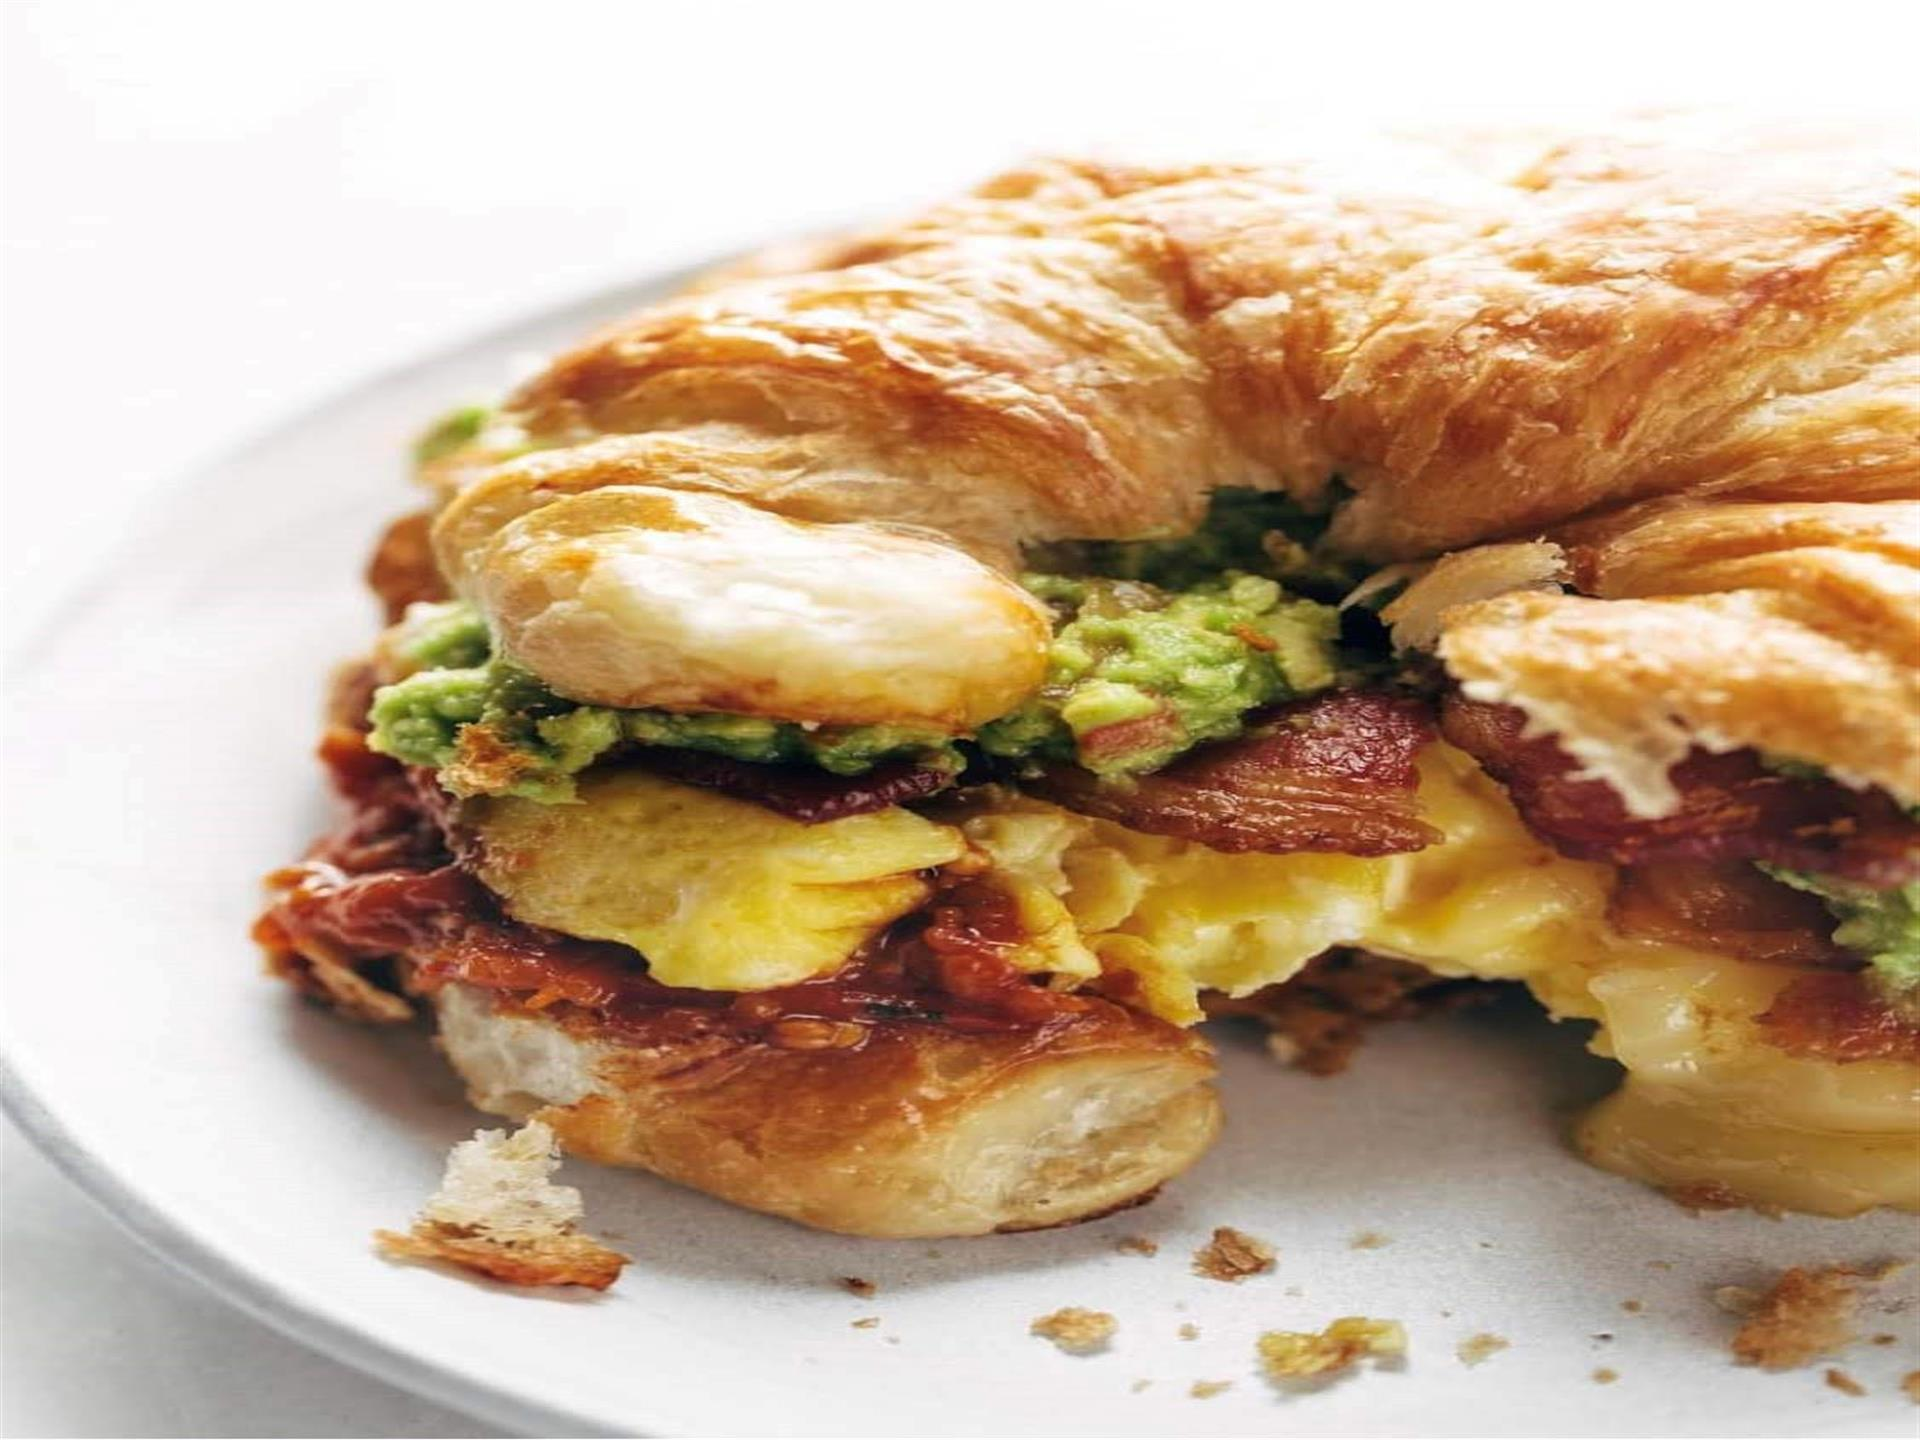 Baja Breakfast Croissant. All you really need in life is love & a good croissant! Scrambled eggs, thick bacon, our homemade garlic butter tomato sauce & our flavorful guacamole. Served with hash browns.